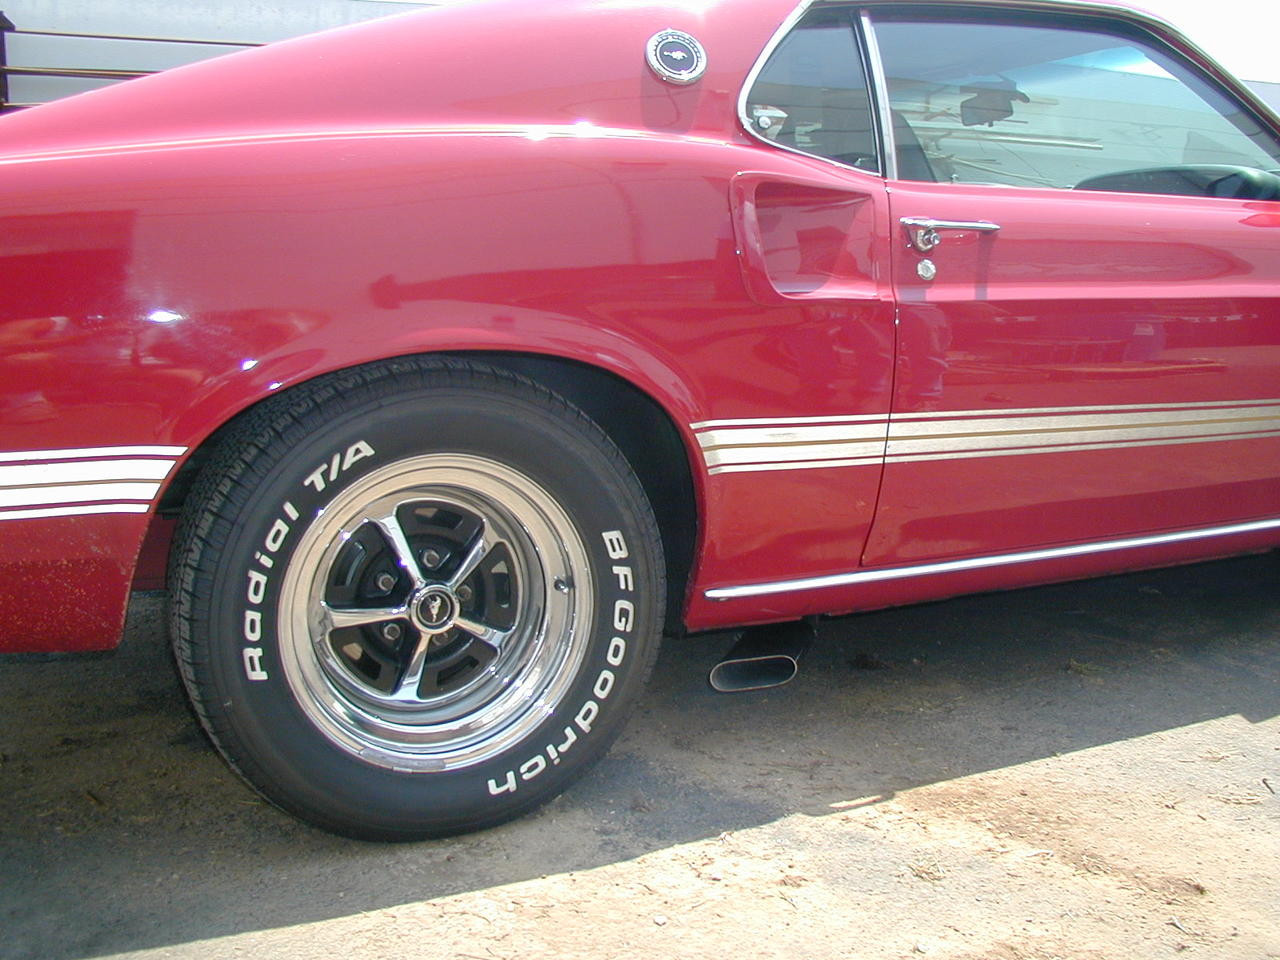 Mustang Side Exit Kits For 1965 1985 V8 Mustangs